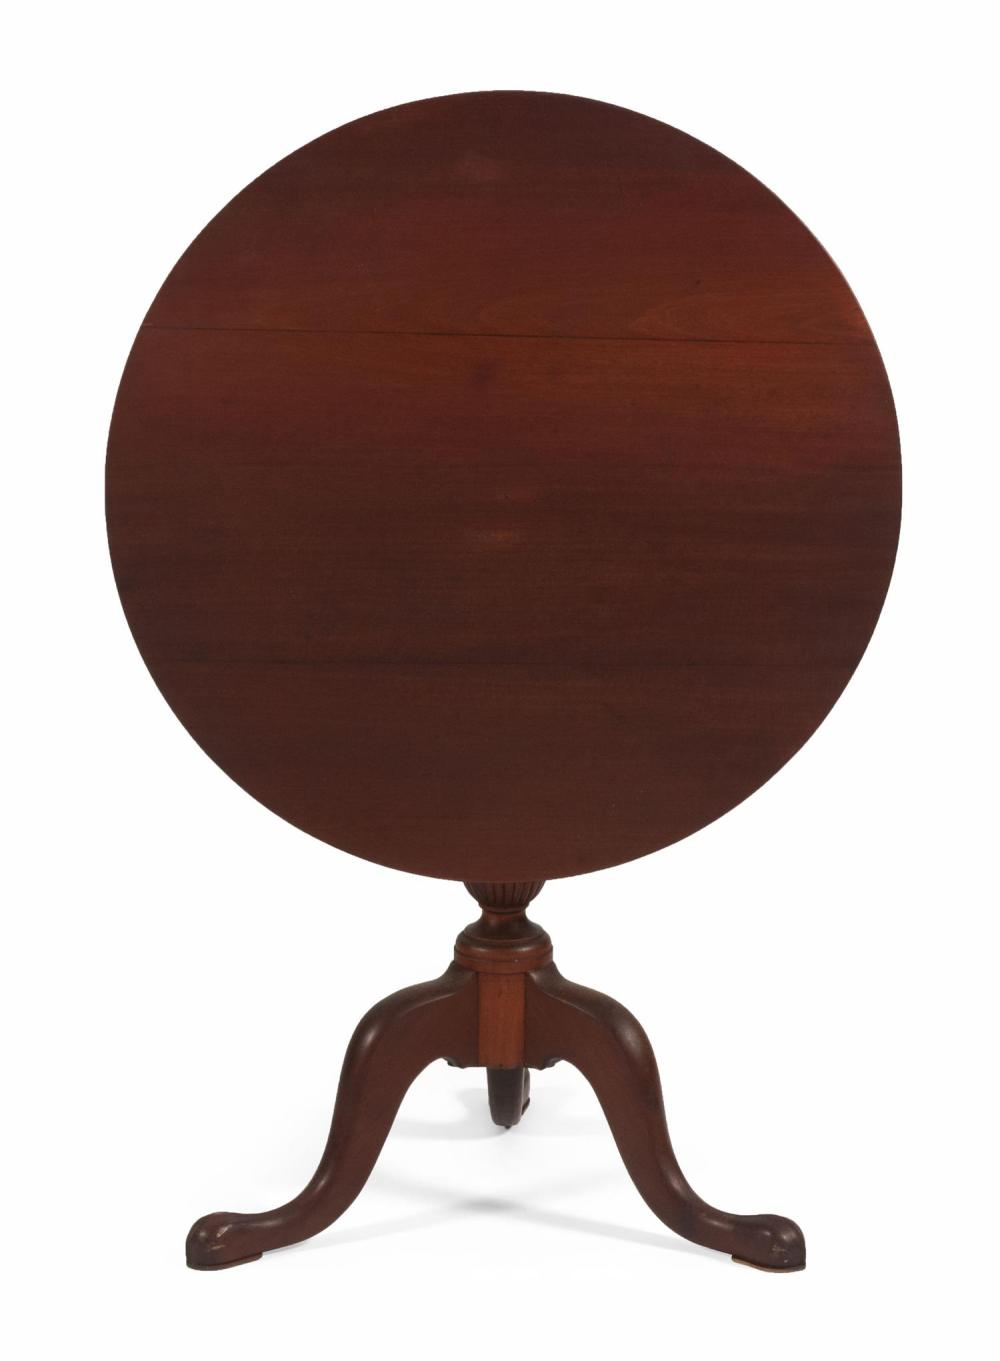 QUEEN ANNE-STYLE TILT-TOP TEA TABLE In mahogany. Circular top. Reeded urn-form pedestal on cabriole legs ending in modified pad feet...